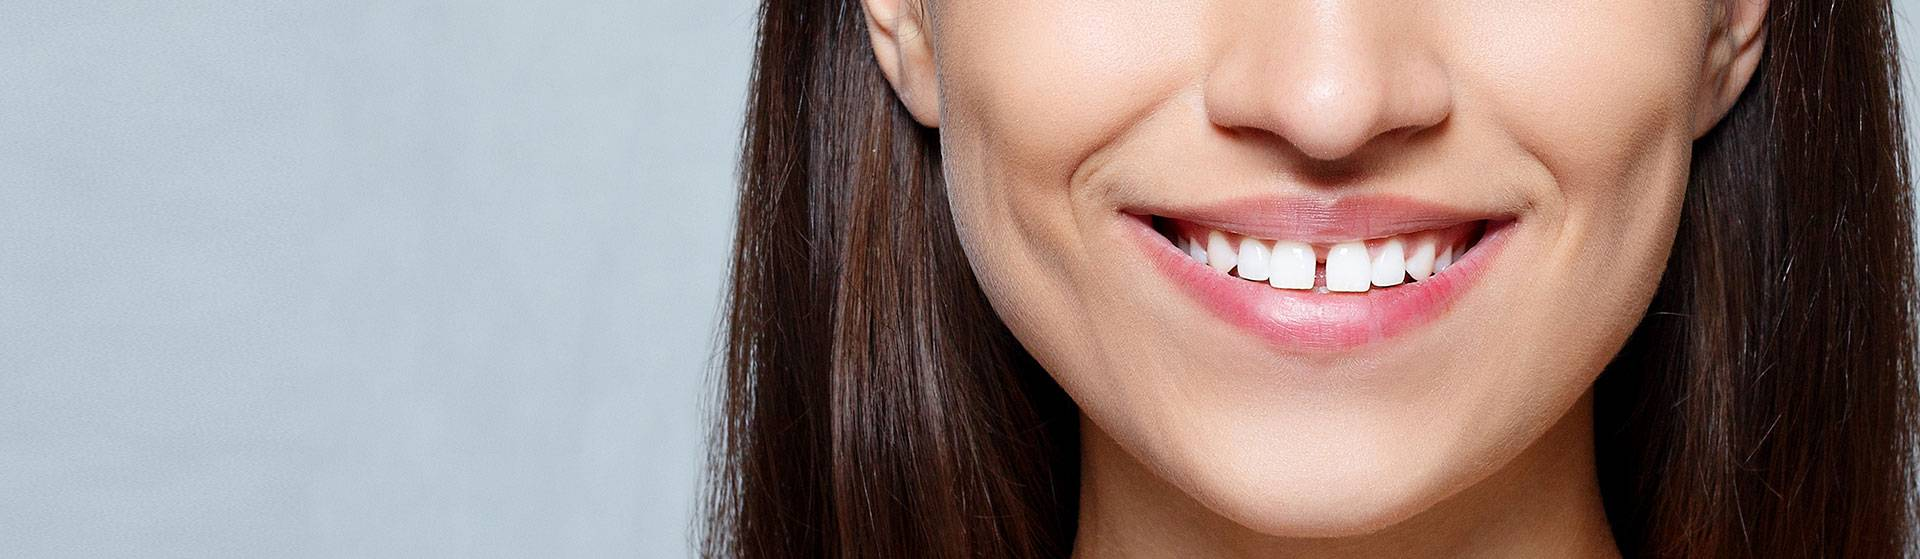 Is Closing The Gaps In Your Teeth Worth It?